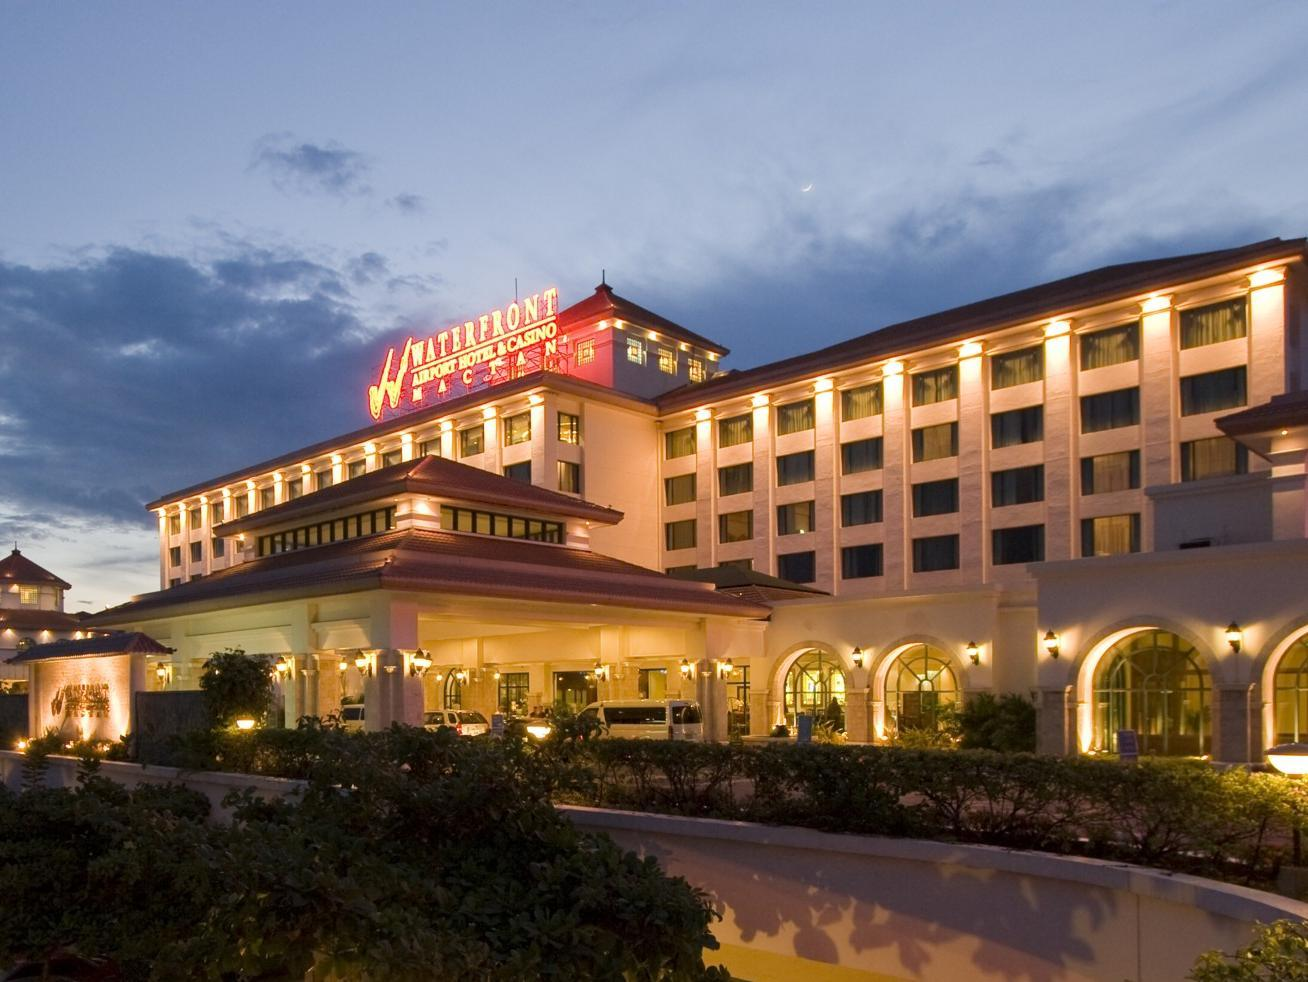 Waterfront Airport Hotel and Casino Cebu - zunanjost hotela